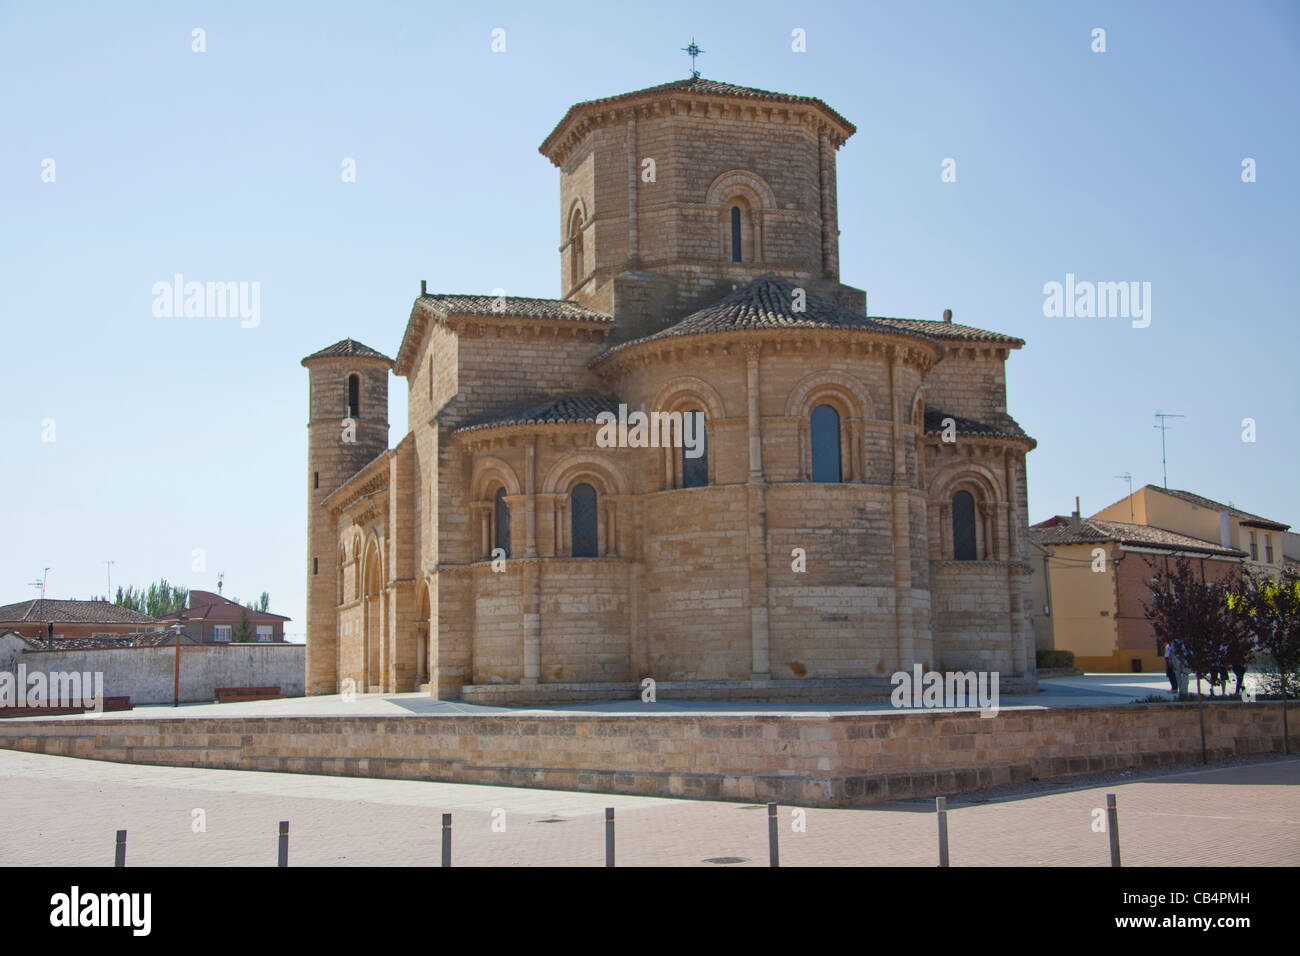 Romanesque Church of San Martín,  Fromista, province of Palencia, Castile and León, Spain. - Stock Image